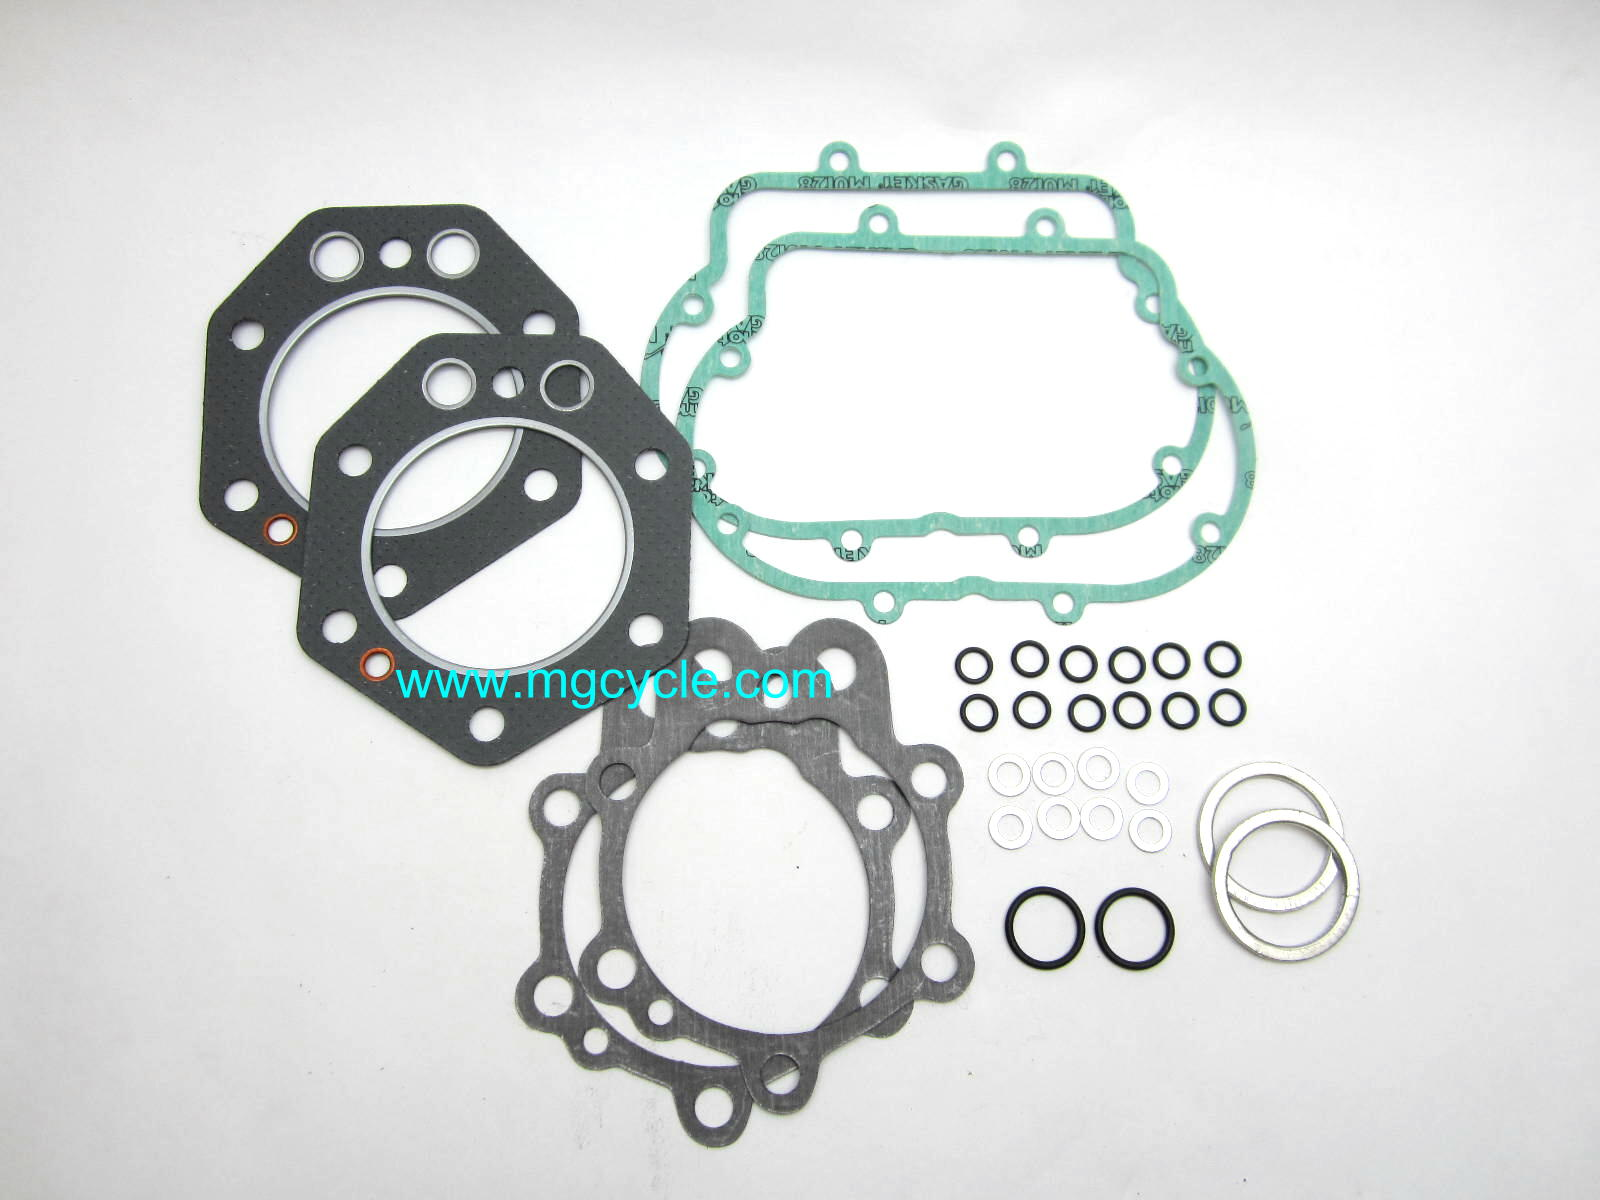 Top end engine gasket set 850cc 83mm round fin 1975-80